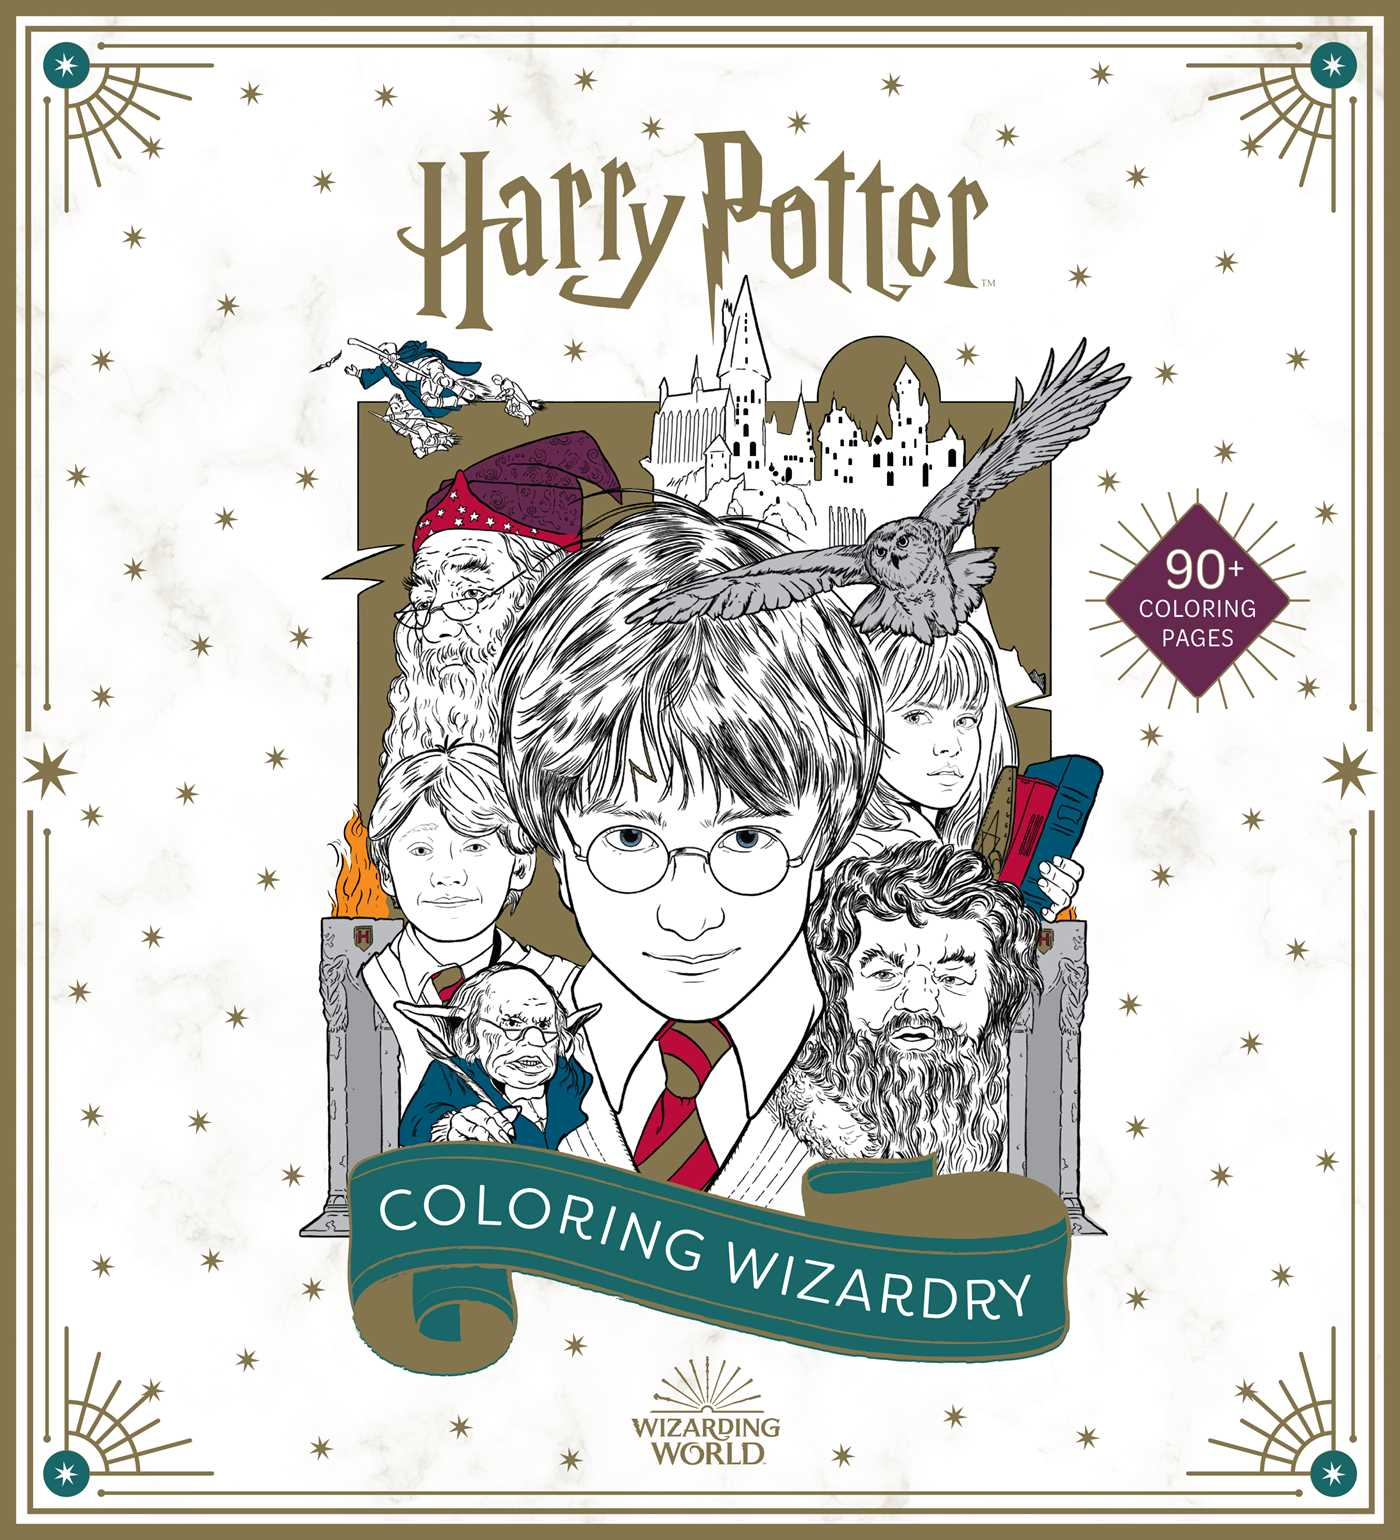 Harry Potter Coloring Wizardry Book By Insight Editions Official Publisher Page Simon Schuster